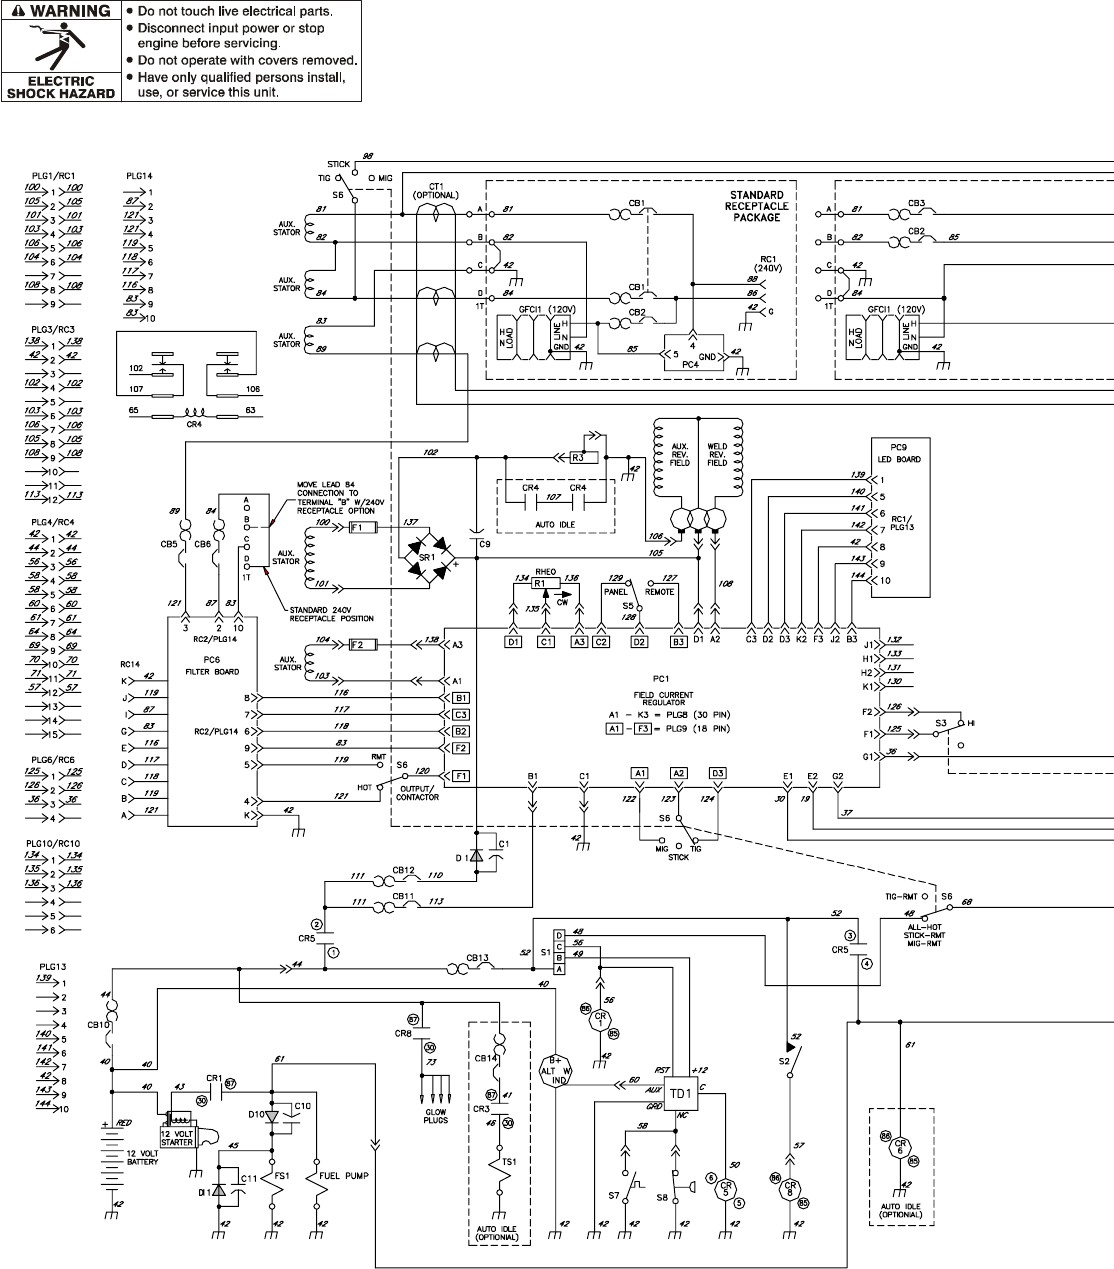 Wiring Diagram Lincoln Stick Welder And Schematics Tig Welding Machine Idealarc 300 Explained Diagrams Rh Dmdelectro Co Arc Part Identification